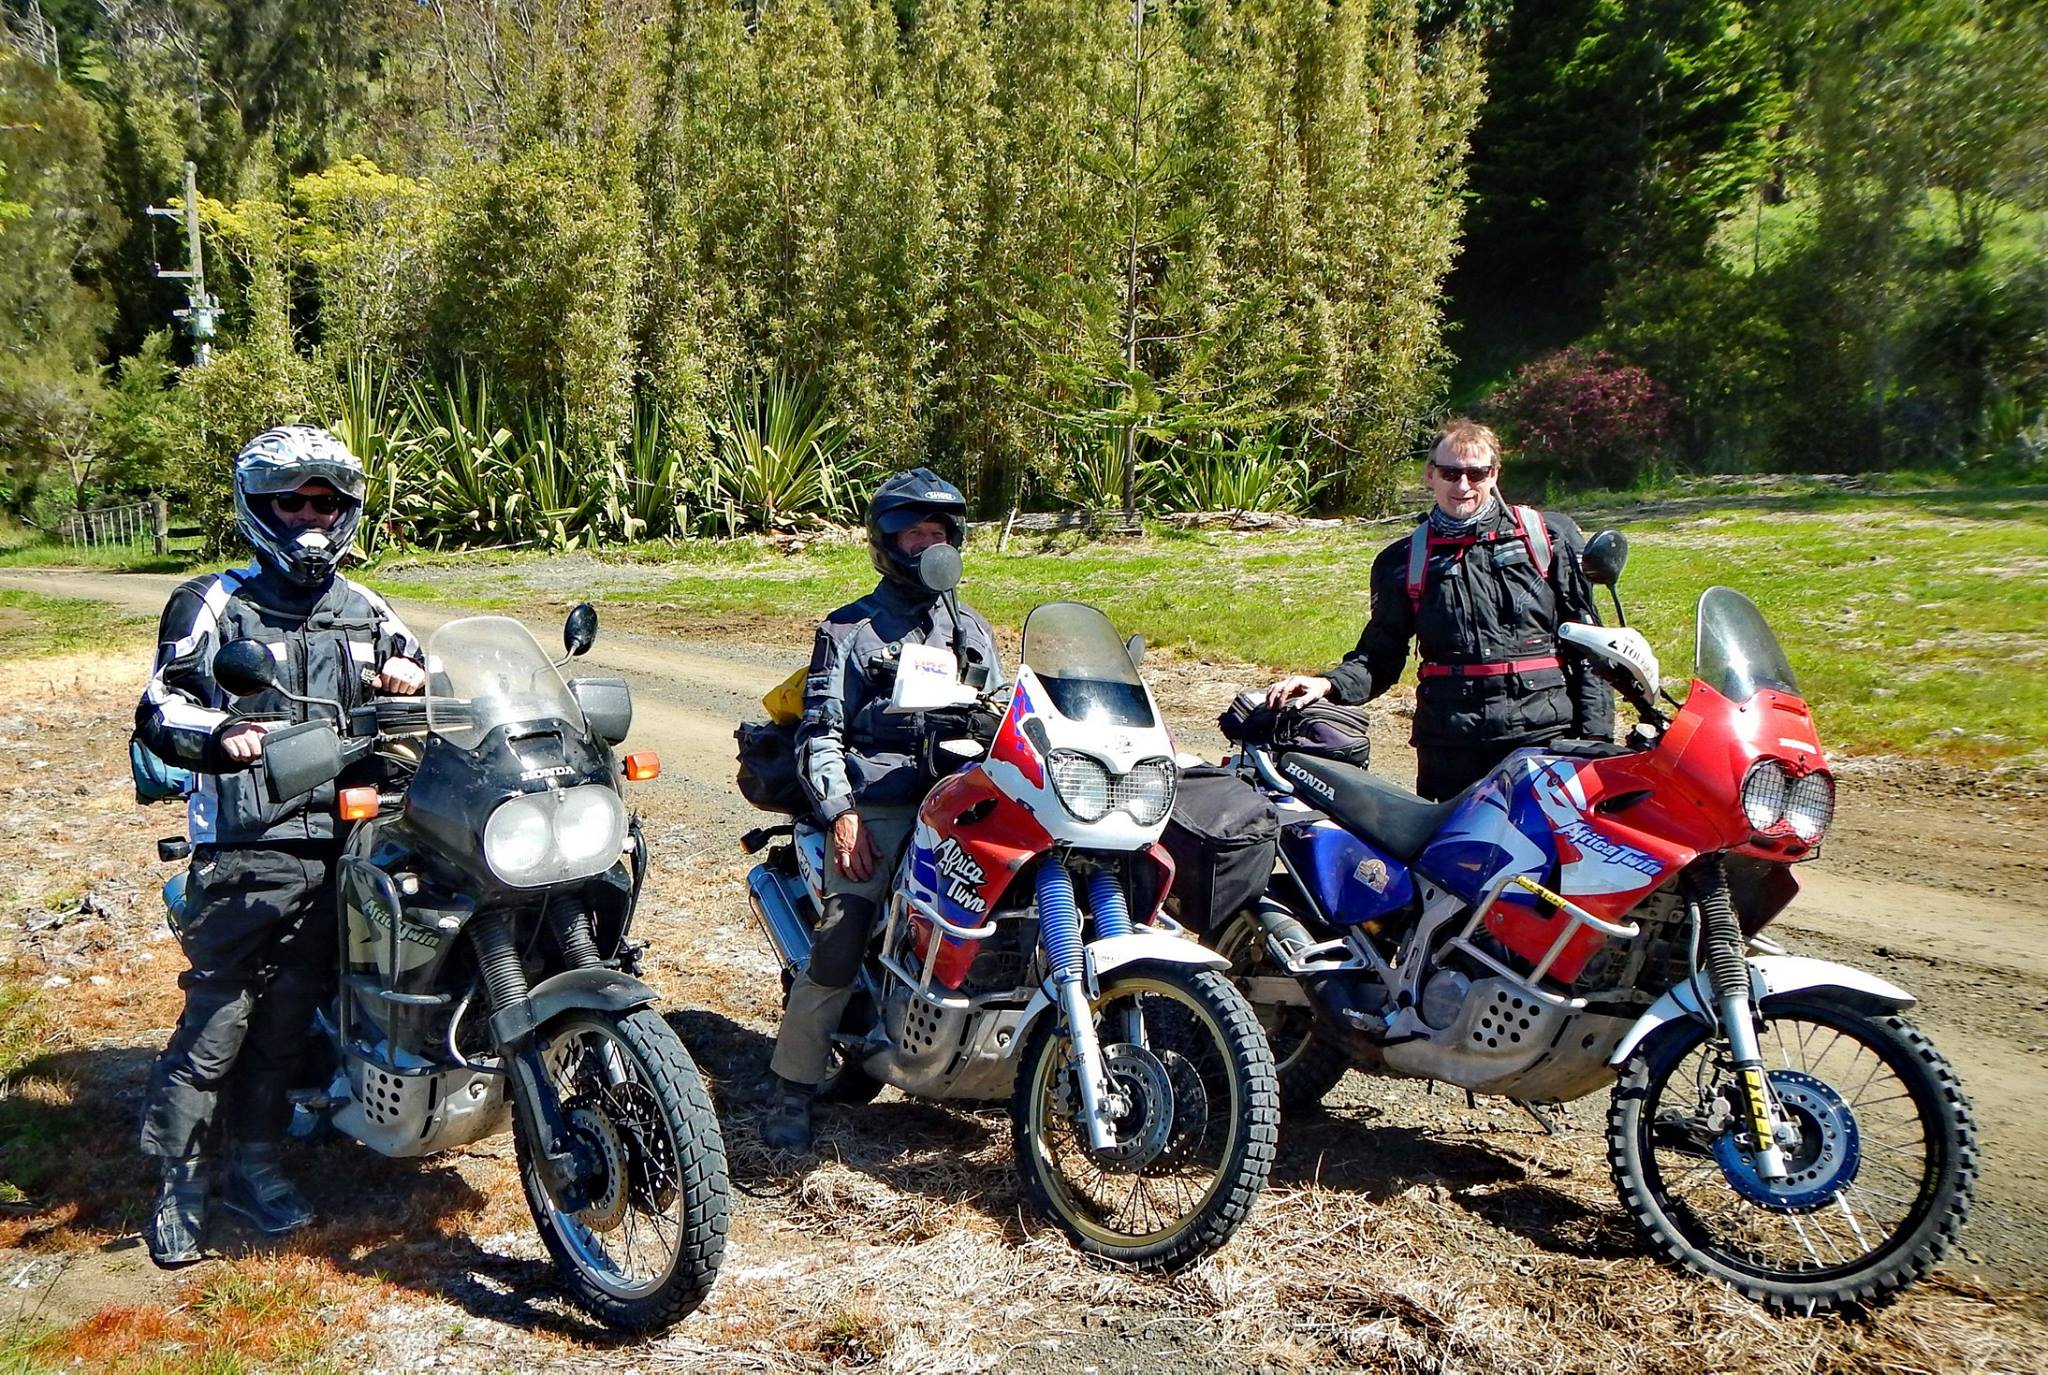 Three Honda Africa Twins and their evil spawn, a Transalp